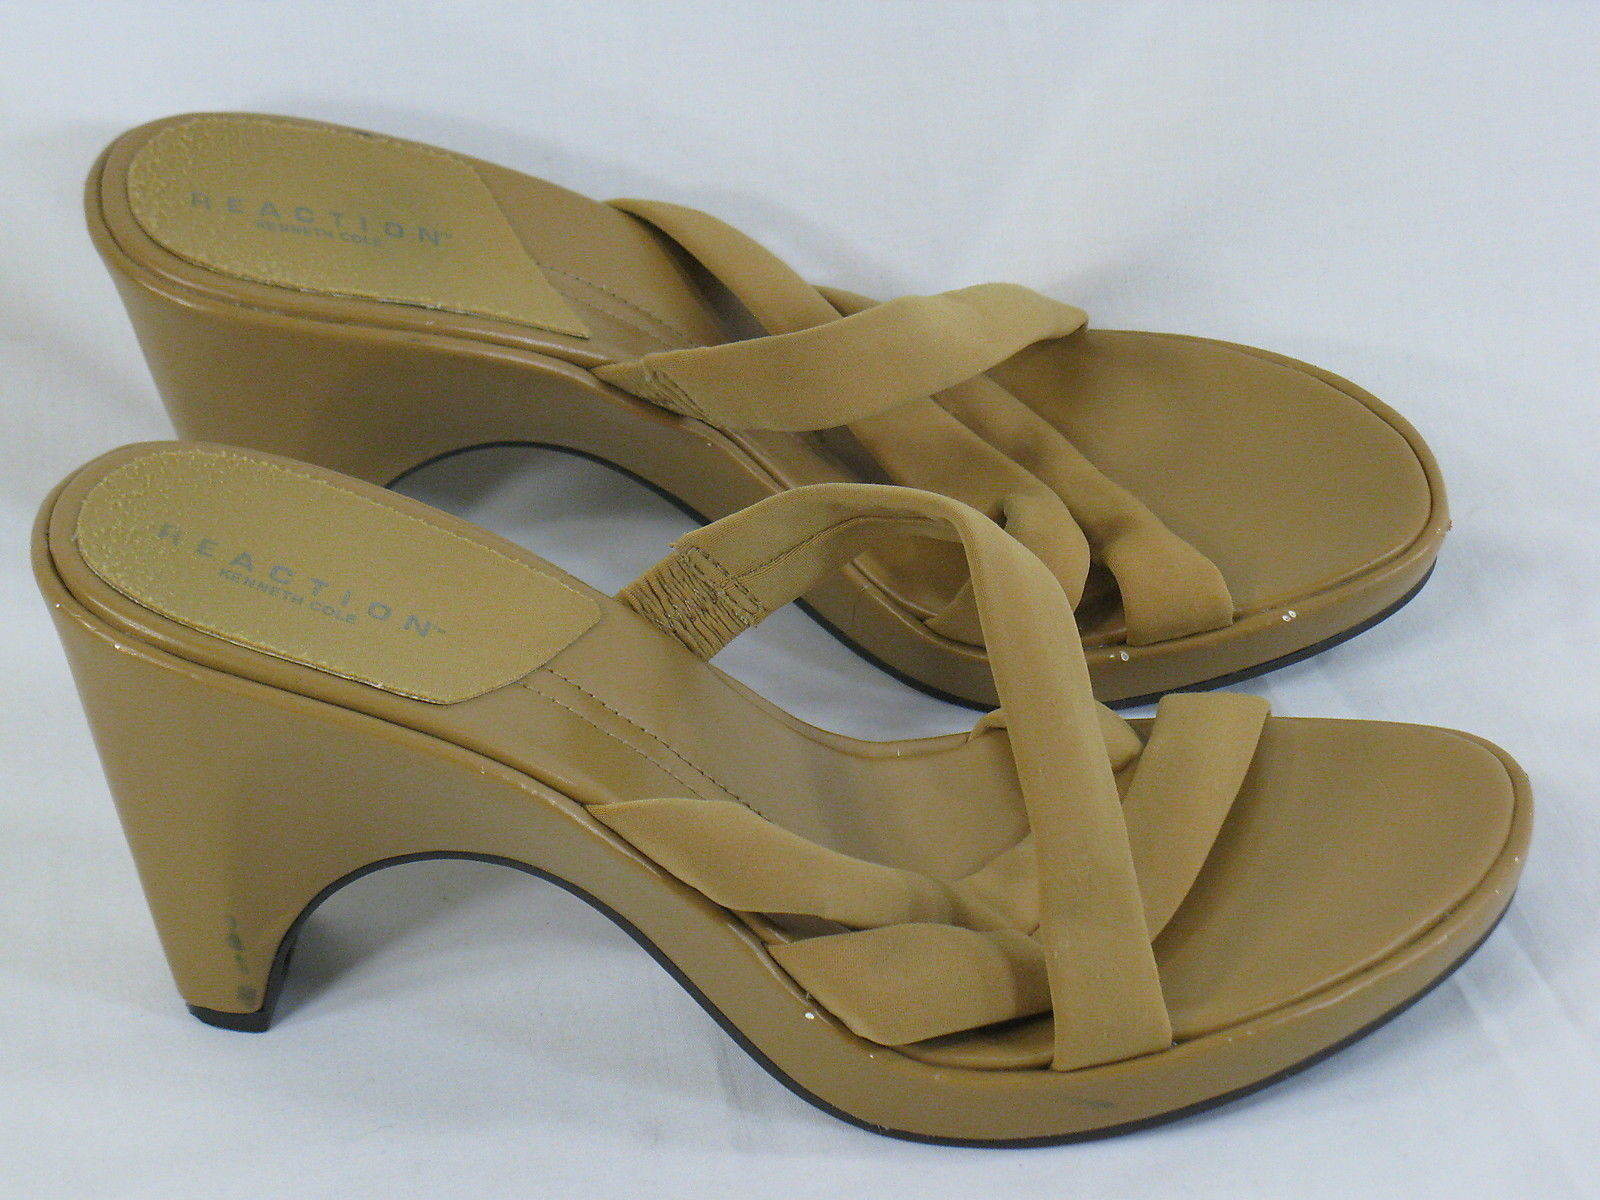 Kenneth Cole Reaction Brown Leather Strappy Chunky Heels 9.5 M US Excellent - $12.56